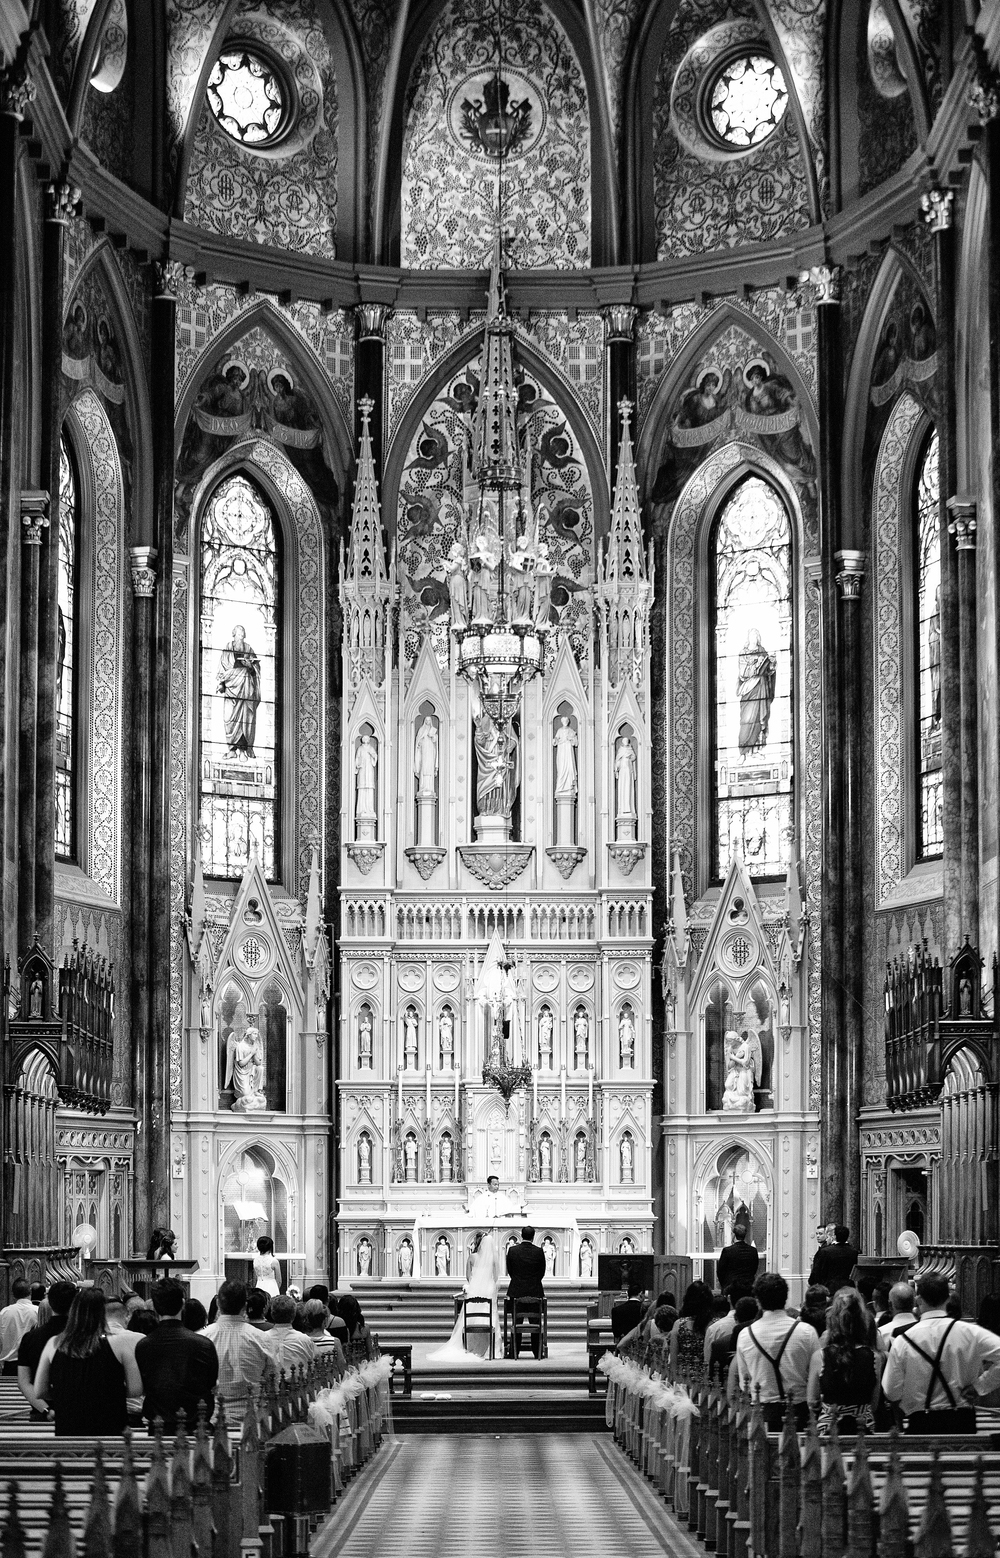 wedding ceremony in big cathedral